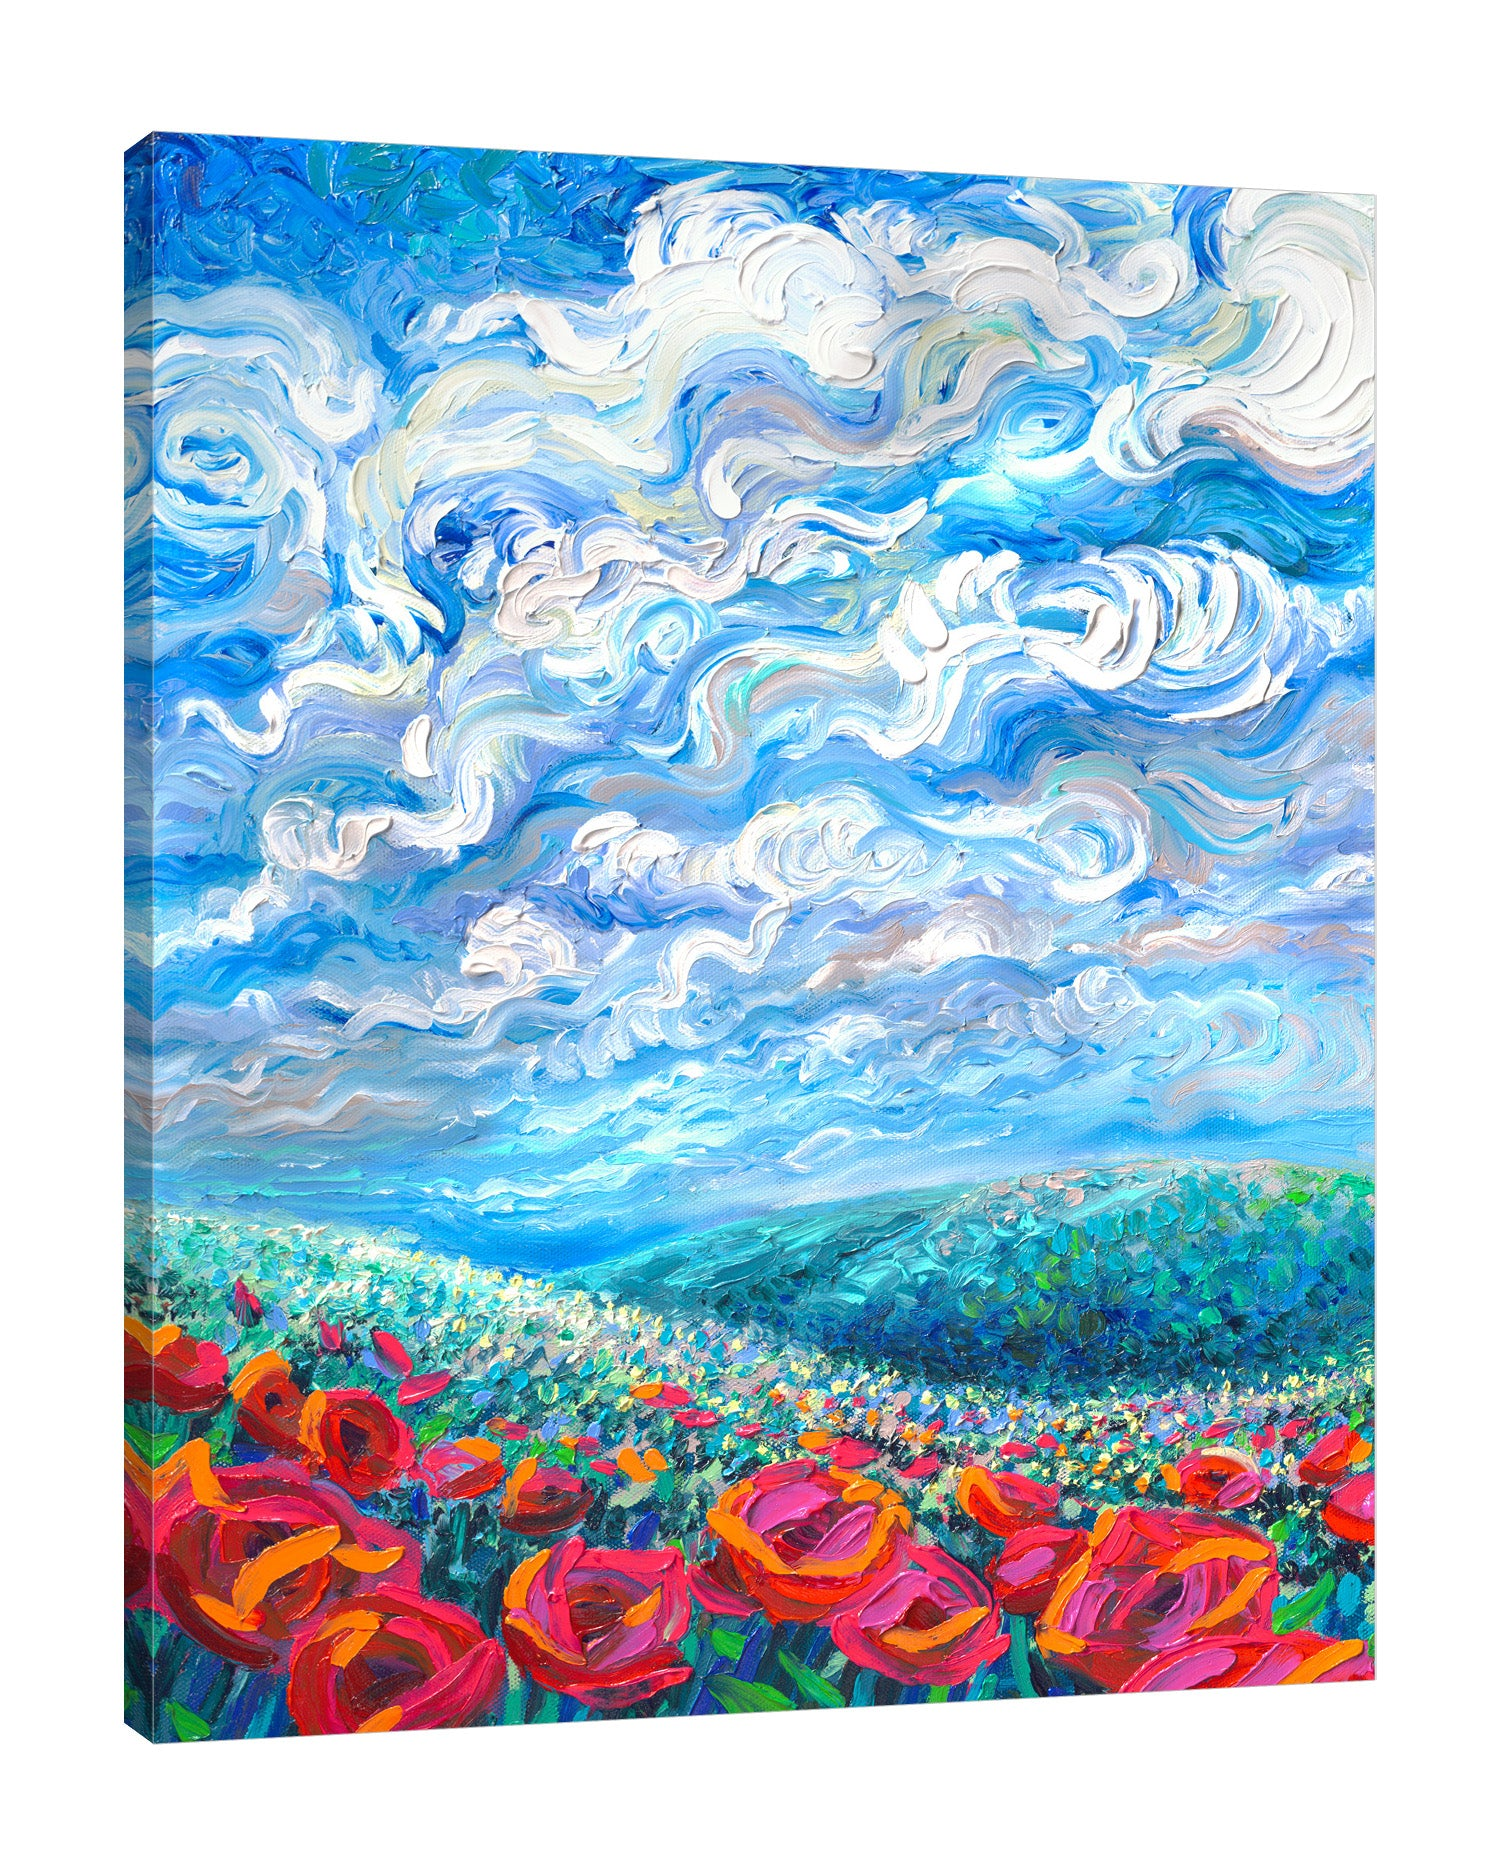 Iris-Scott,Modern & Contemporary,Floral & Botanical,skies,clouds,florals,flowers,mountains,botanical,